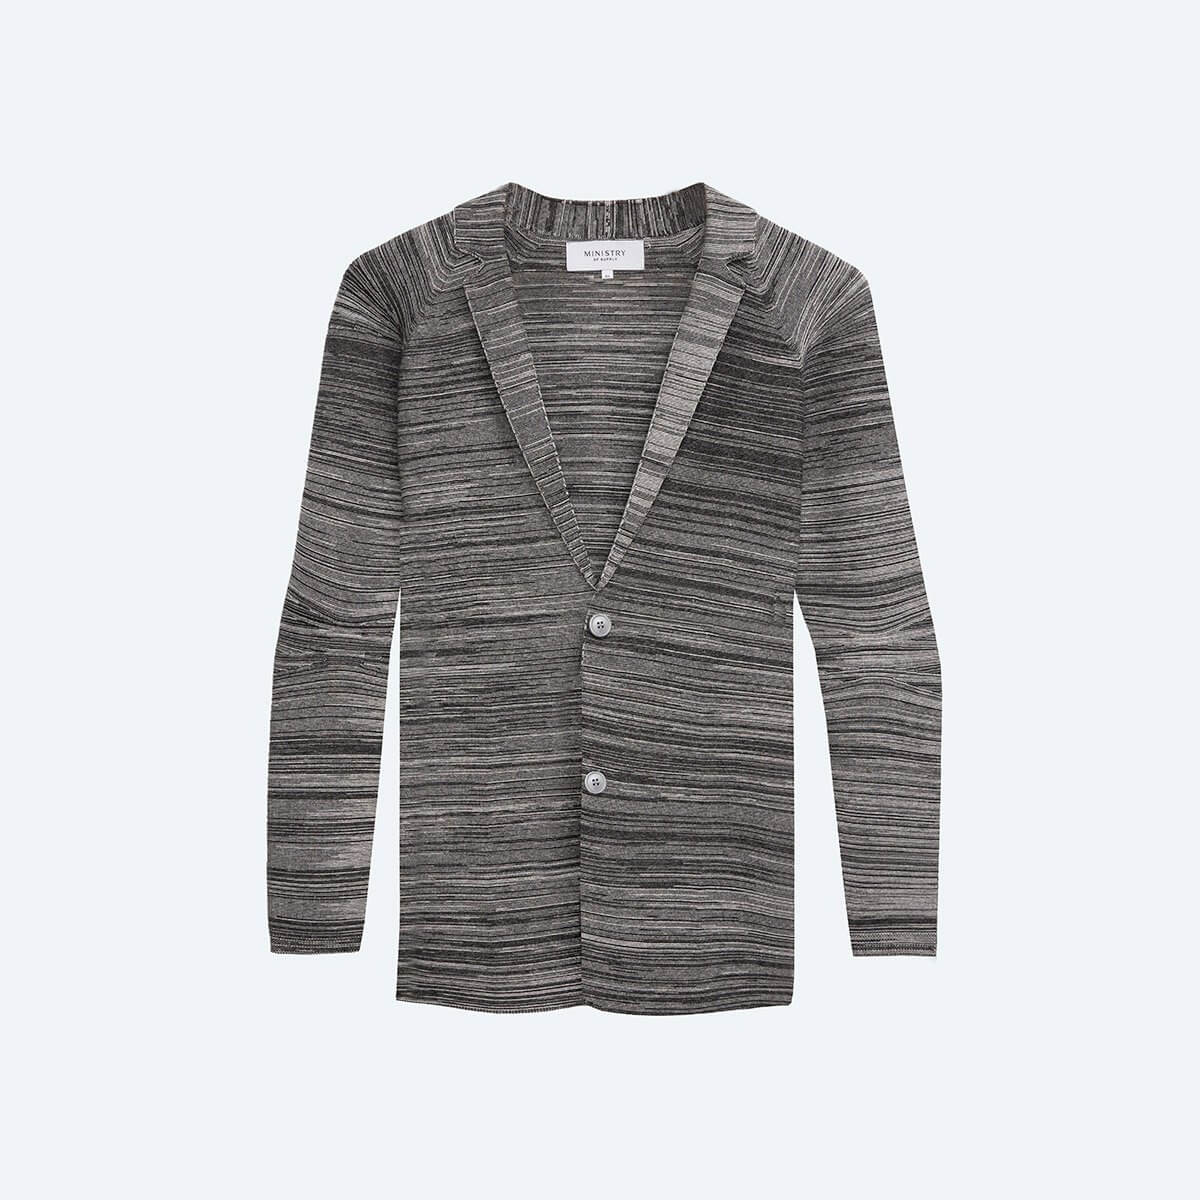 credit: https://ministryofsupply.com/products/mens-3d-print-knit-blazer-barcode